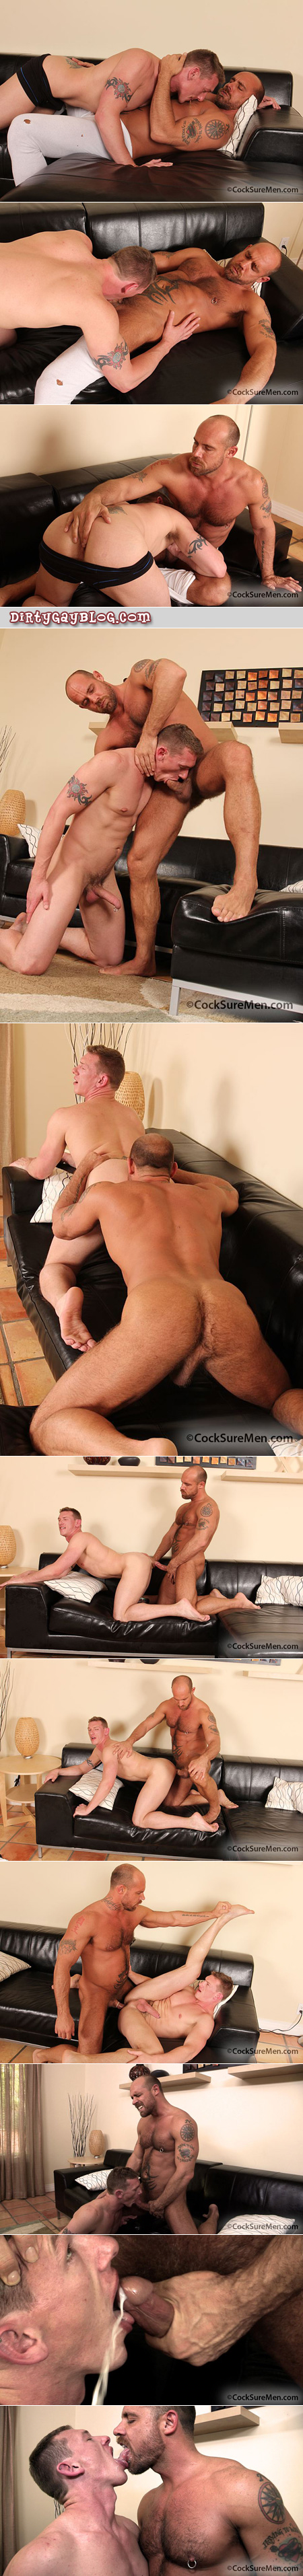 Hairy, muscular, tattooed bald stud gay snowballs with his pierced white male buddy.